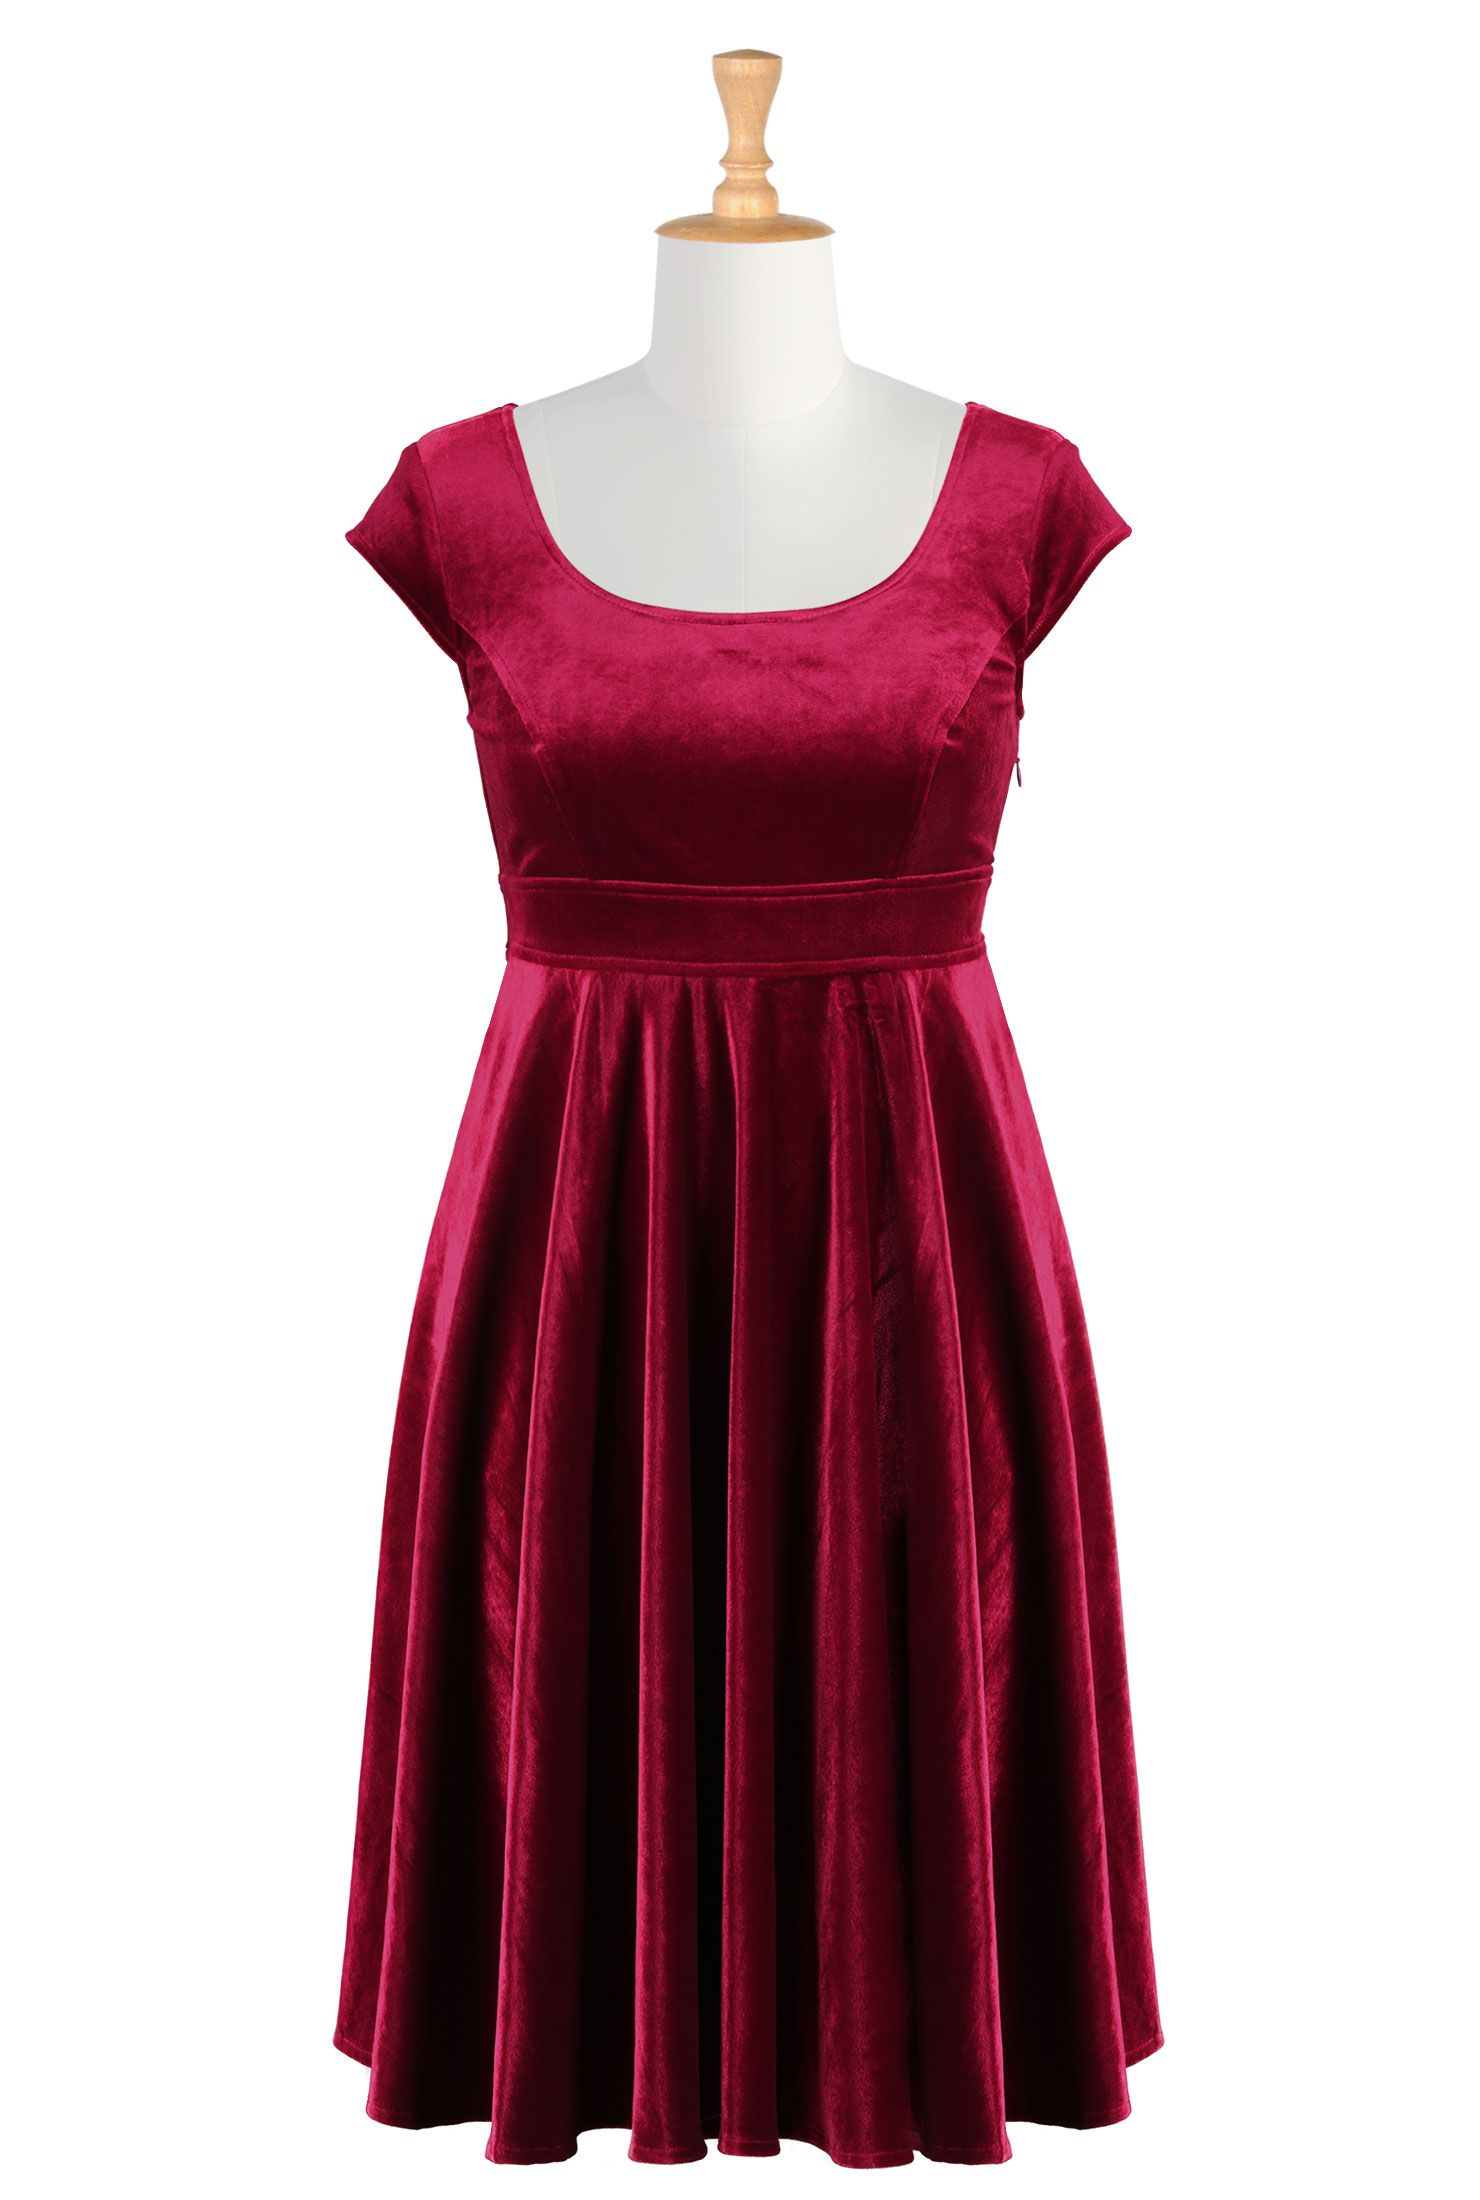 Red Velvet Dresses, Cocktail Dresses For Plus Sizes Shop women's ...